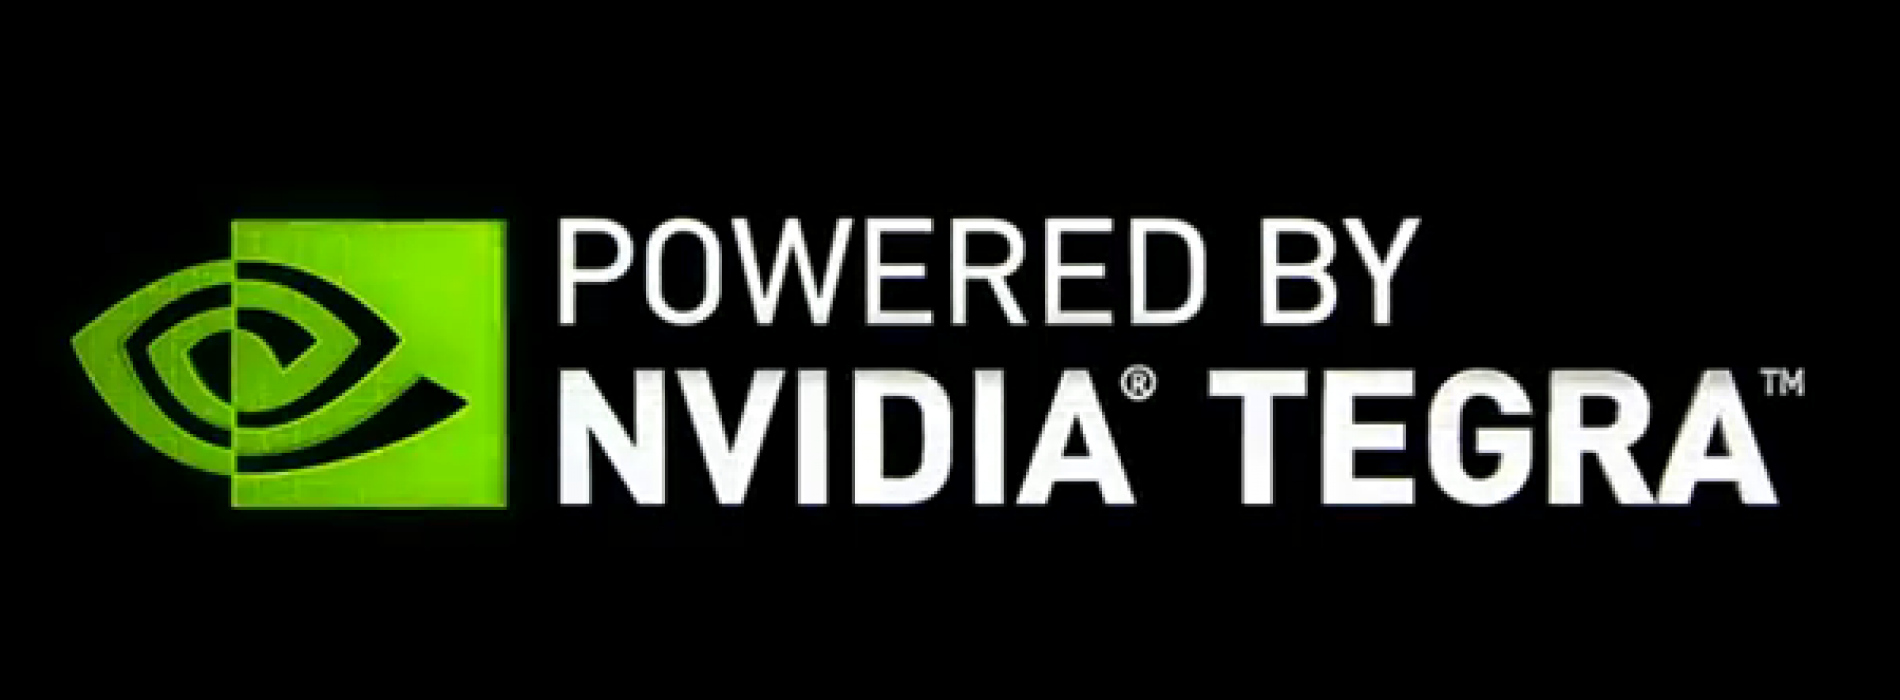 NVIDIA shows off Tegra 3 capabilities with Shadowgun demo [VIDEO]